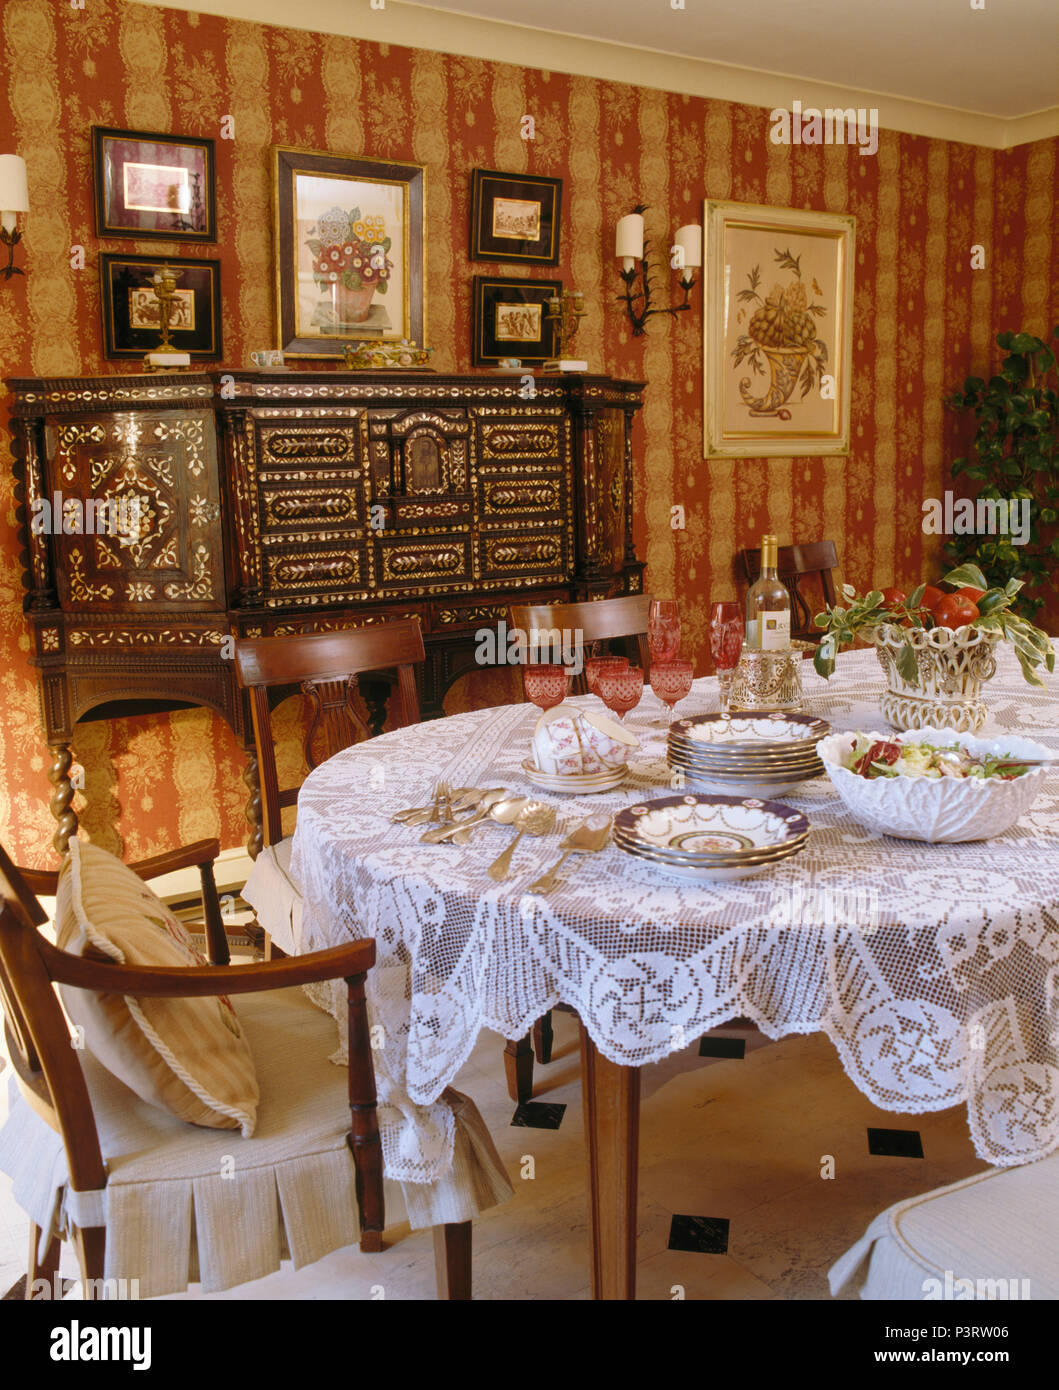 Lace Cloth On Table Set For Dinner In Elegant Dining Room With Red